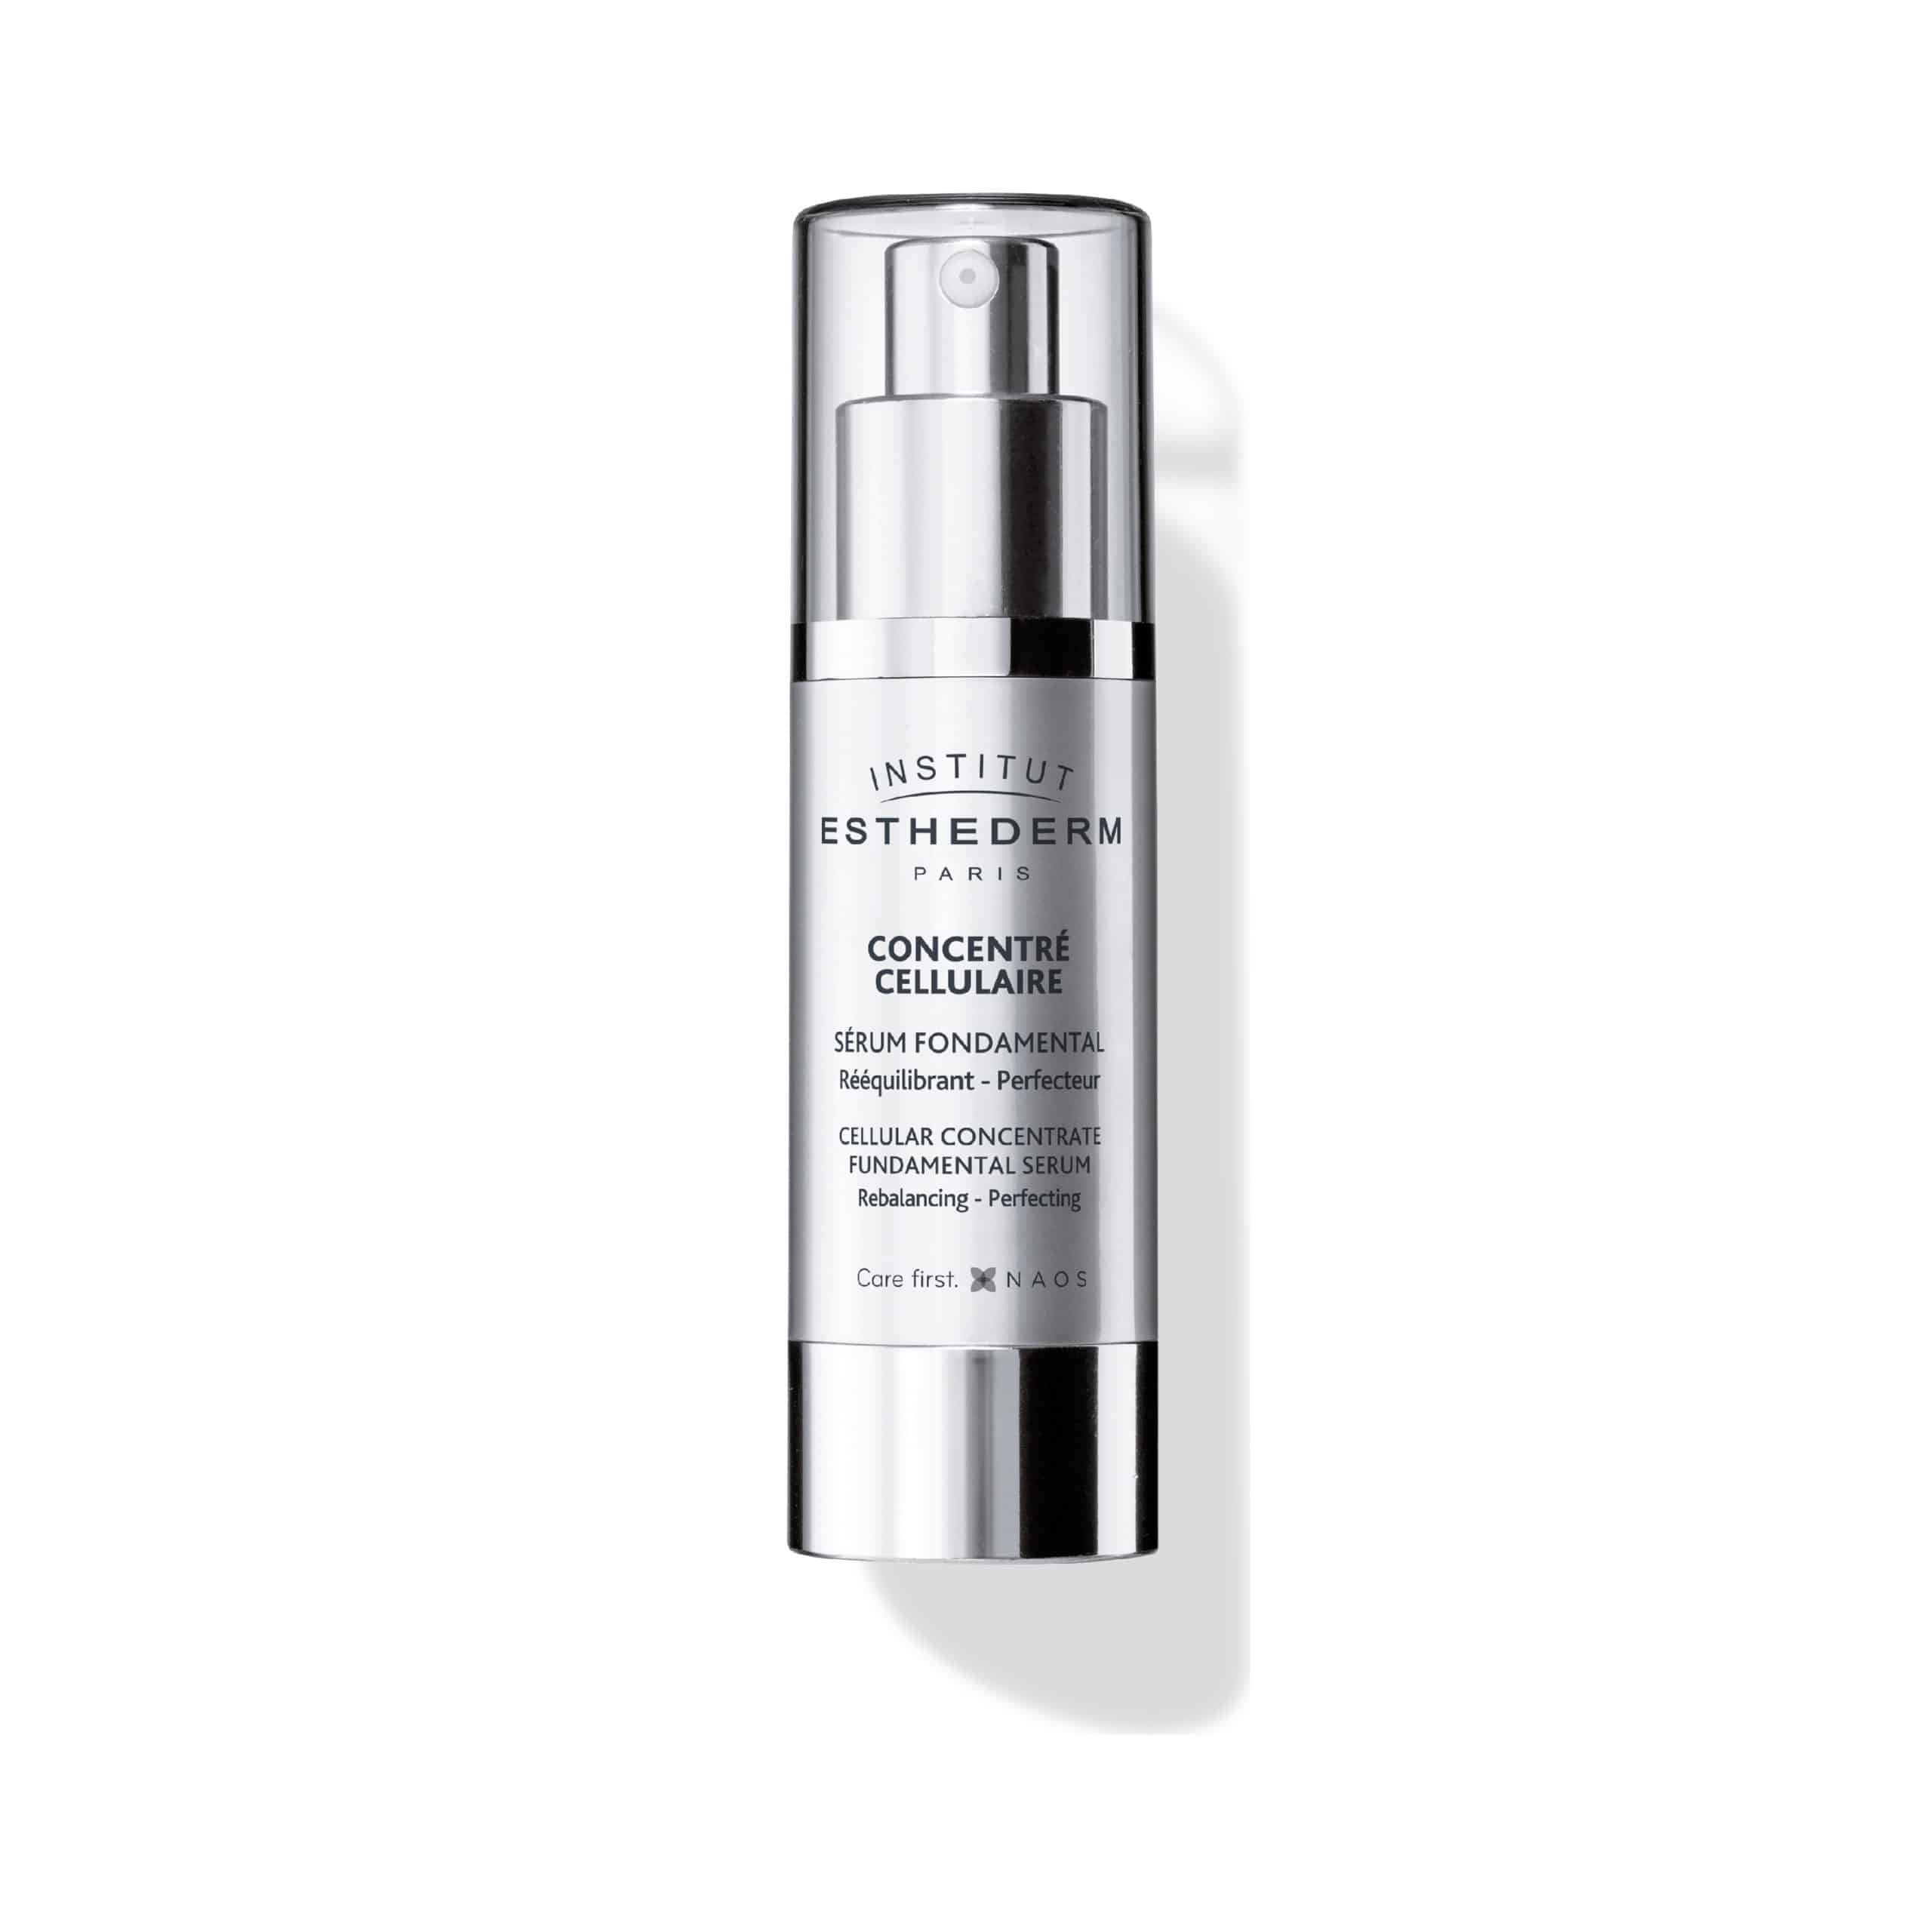 ESTHEDERM product photo, Cellular Concentrate Fundamental Serum 30ml, universal care, hydrates, soothes, rebalances skin